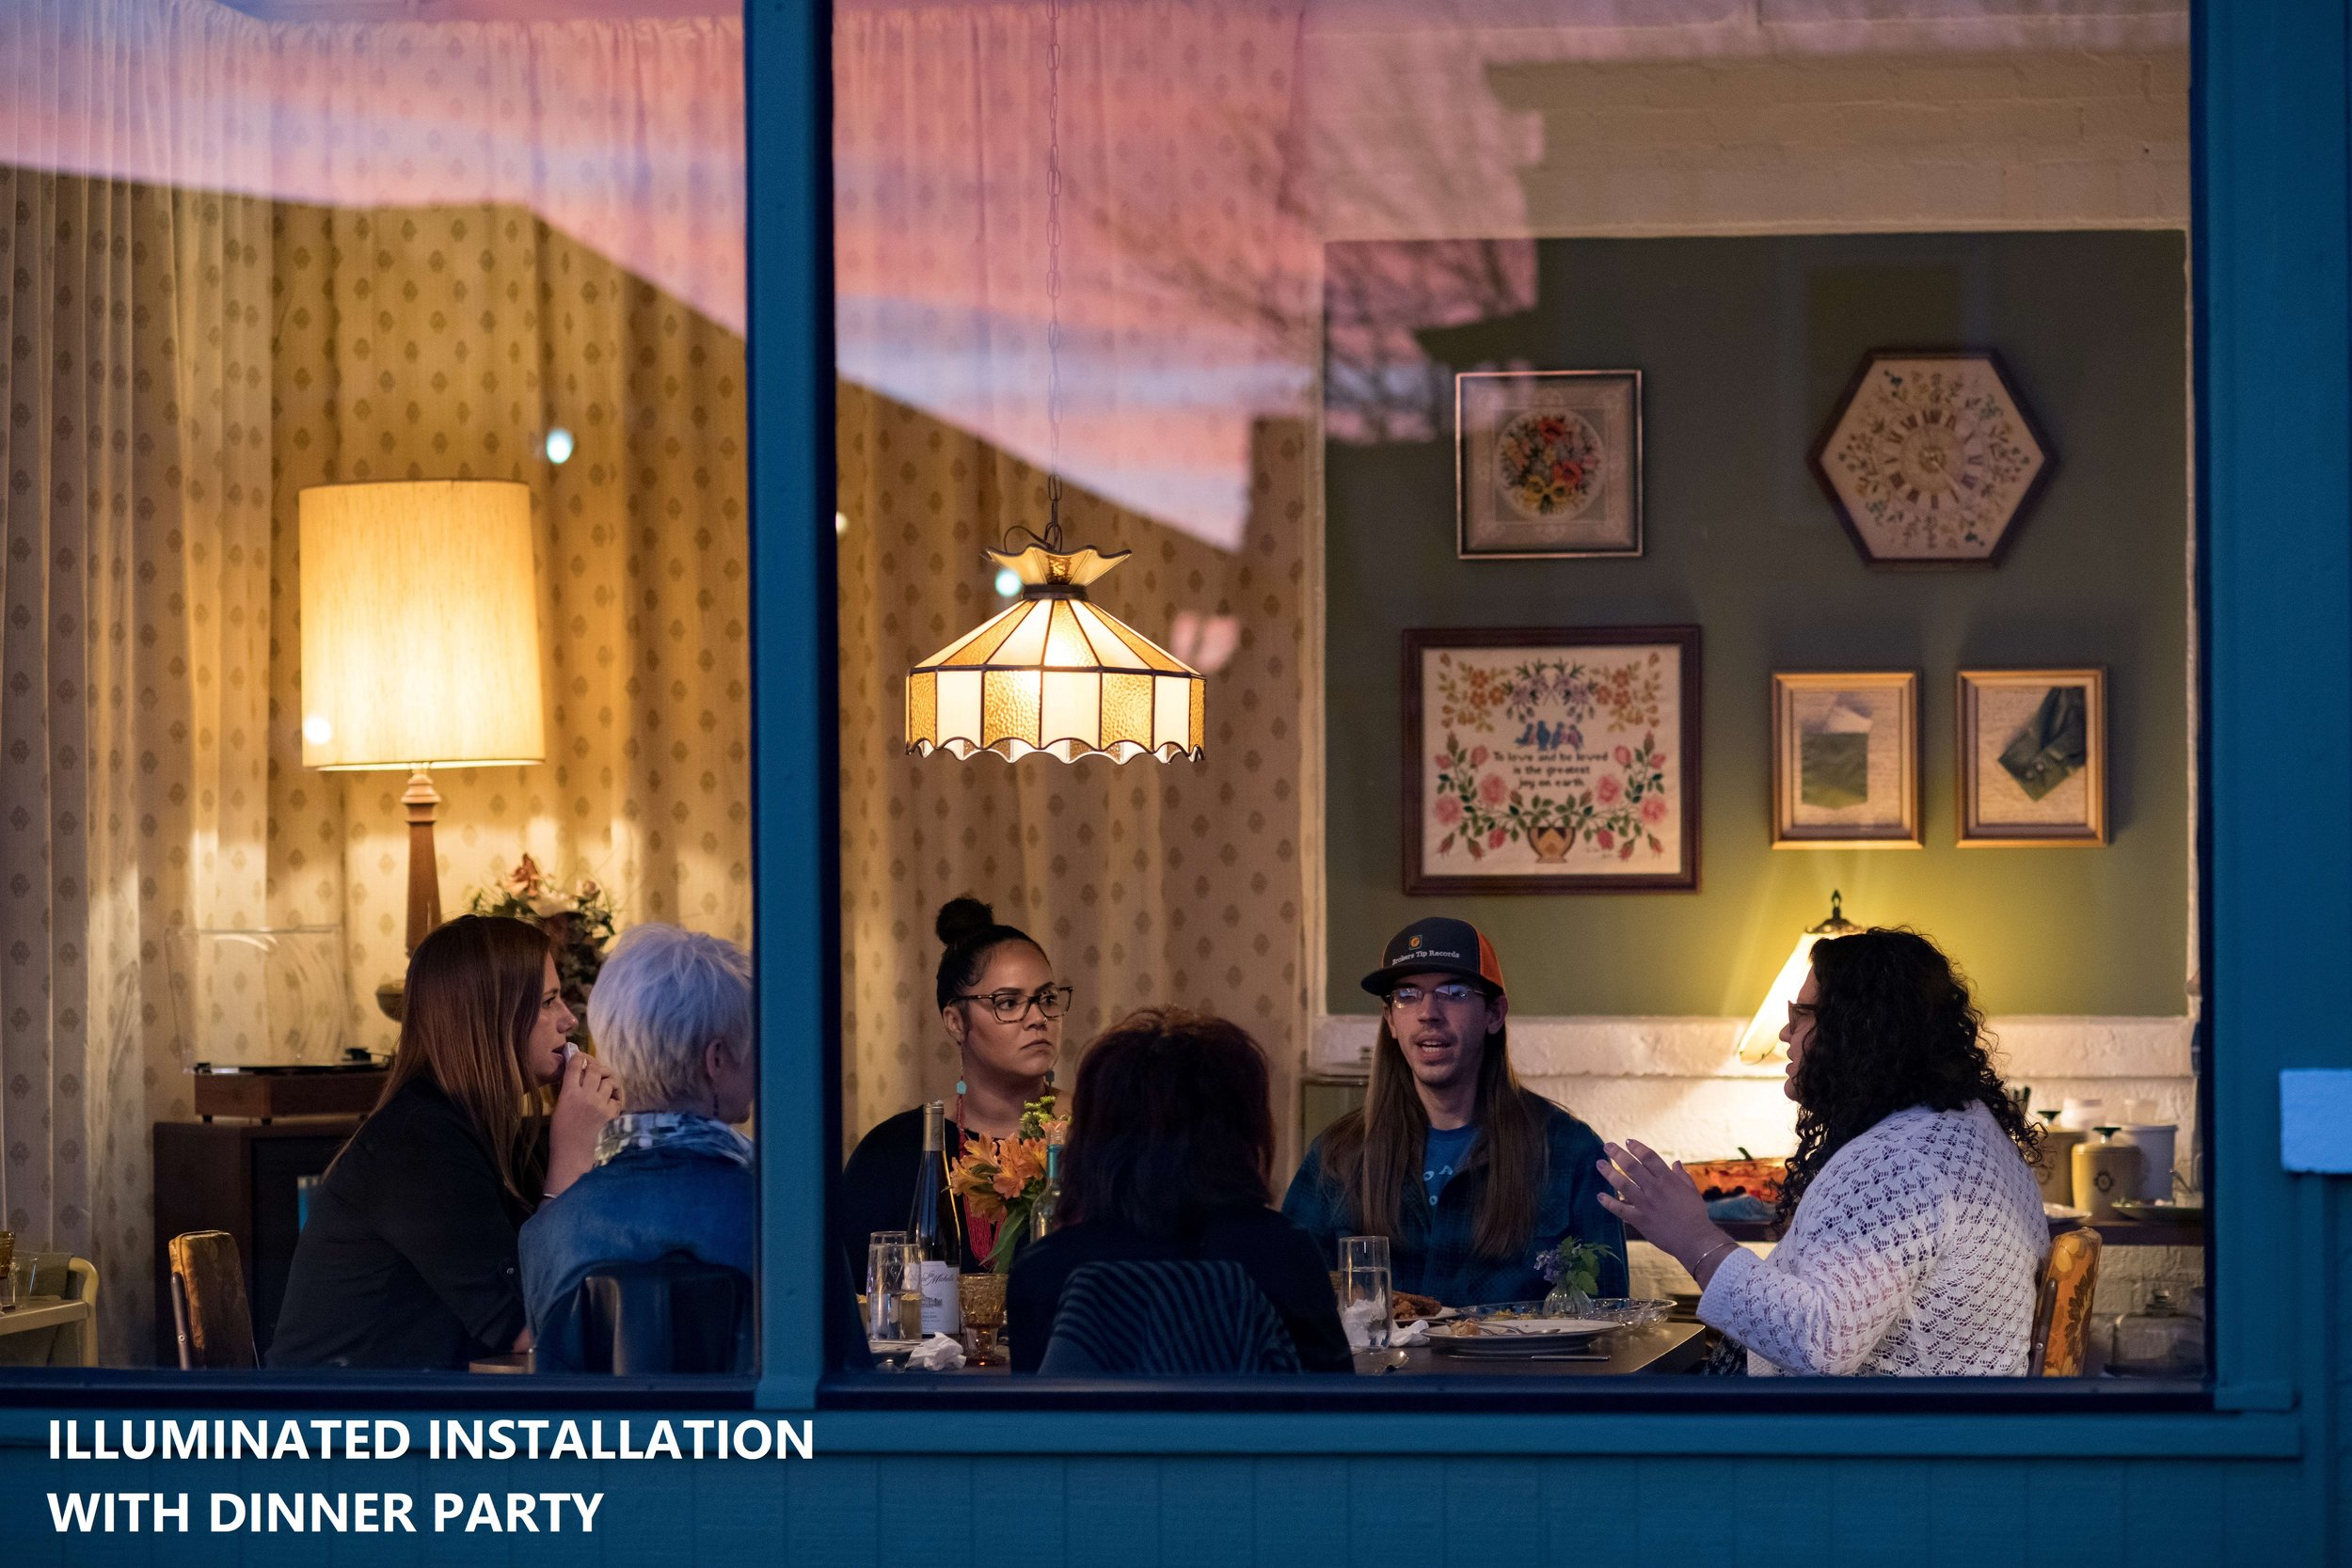 """Illuminated"" is a small installation of an intimate dining room that offered weekly potluck dinner parties to spark conversations and share memories over food and fellowship. Set in a glassed-in former gas station, the nostalgic space provided public glimpses of private moments.  OL Guild, Valley Junction, West Des Moines, Iowa, in Spring 2019"